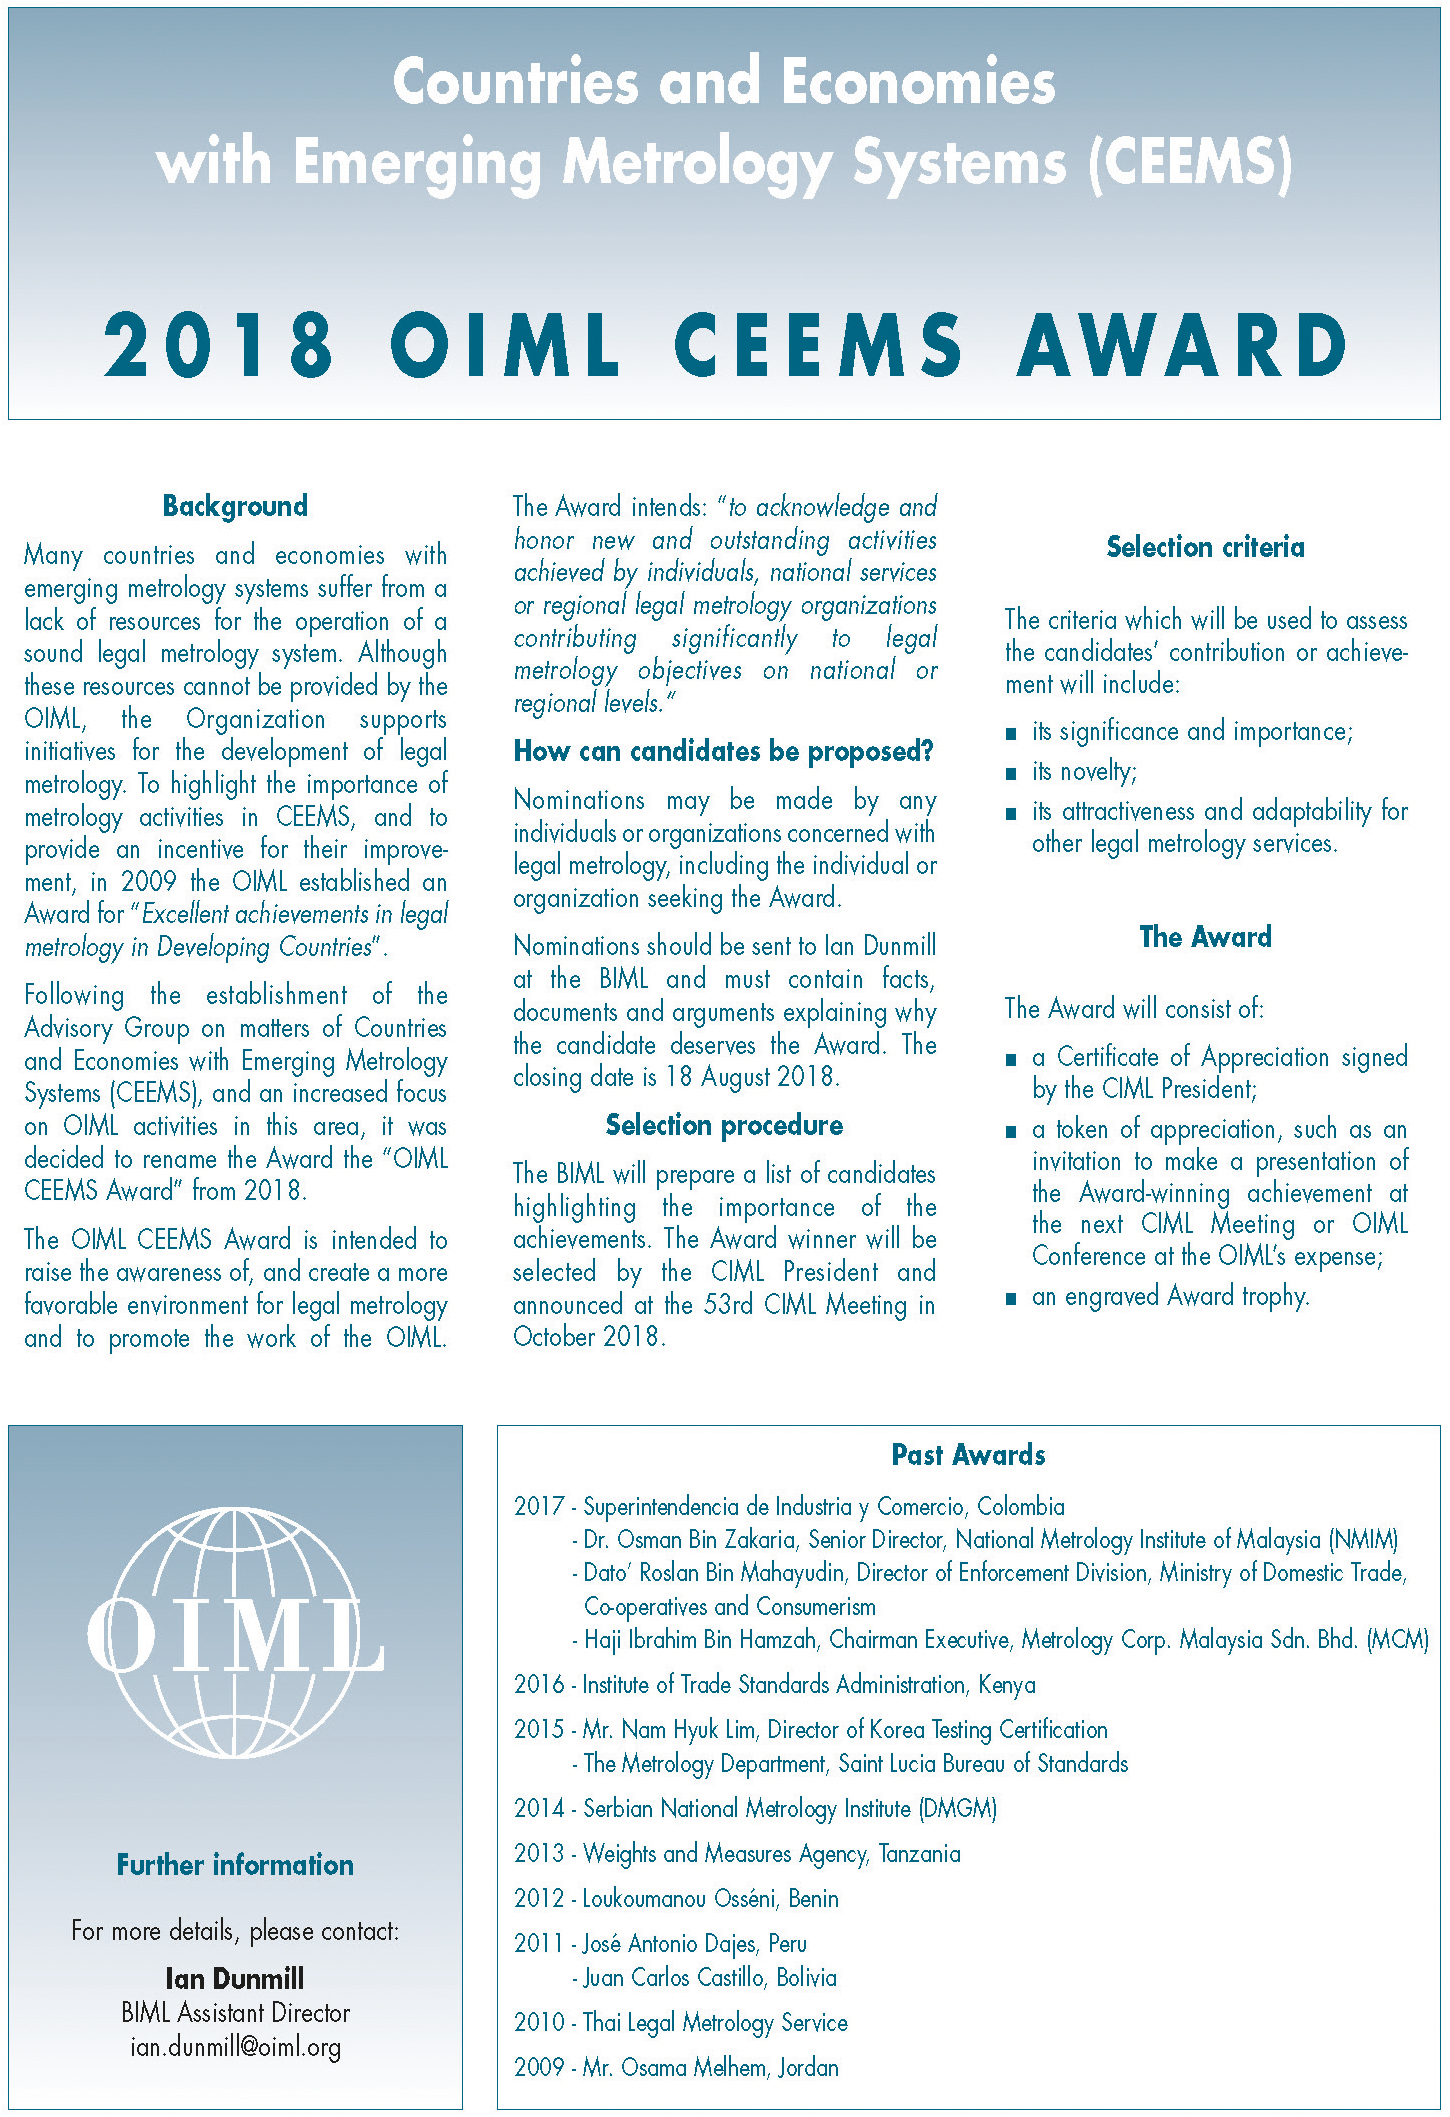 oiml ceems award announcement 2018